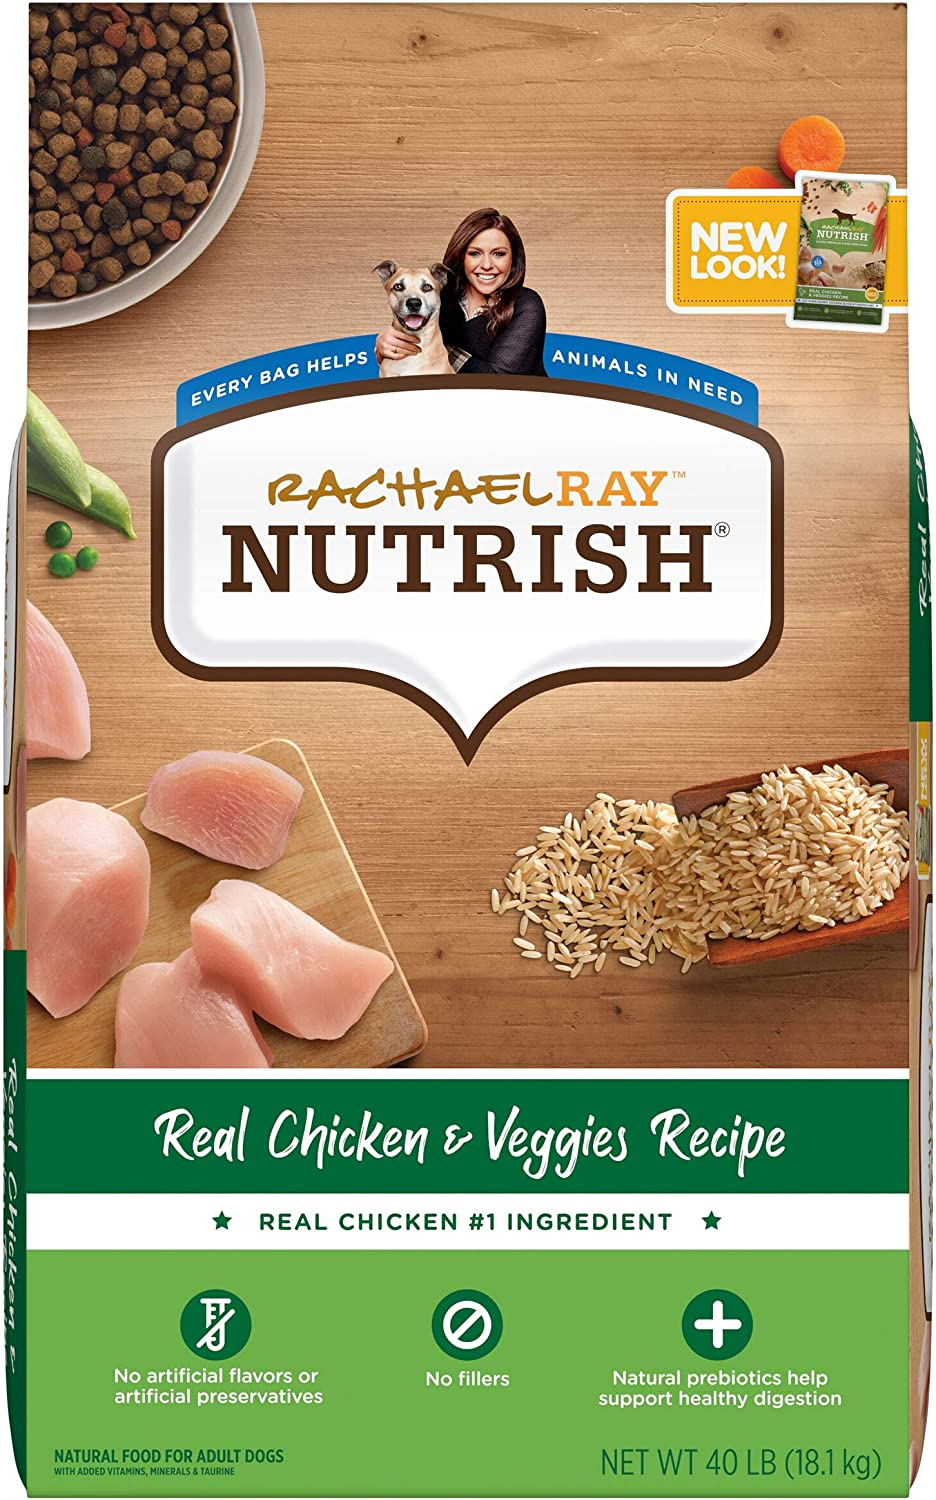 Rachael Ray Nutrish Premium Natural Dry Dog Food, Real Chicken & Veggies Recipe, 40 Pounds (Packaging May Vary): Pet Supplies